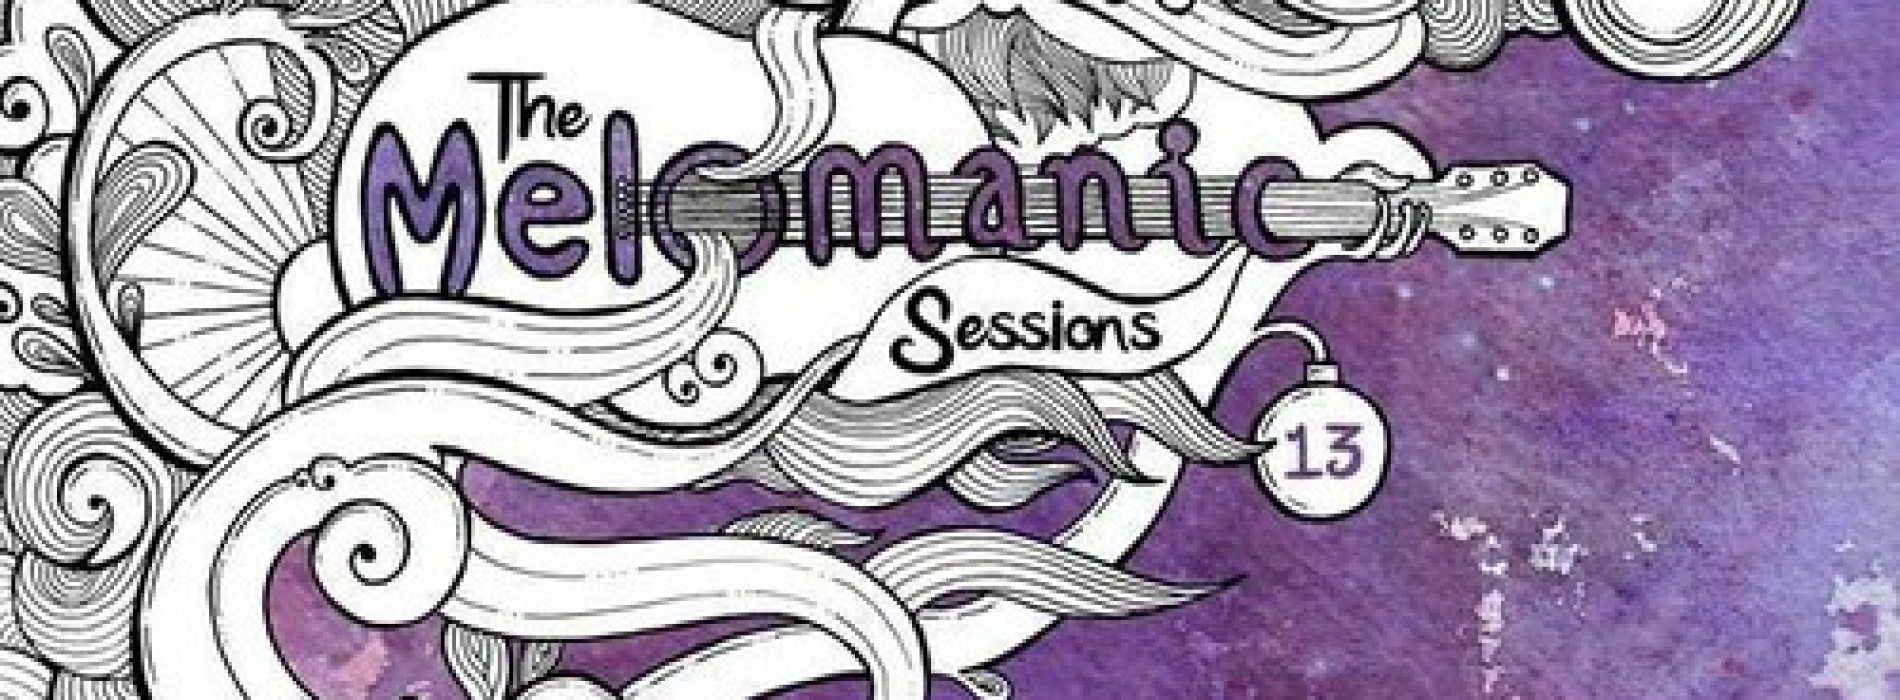 Melomanic Sessions 13 – Park Street Warehouse